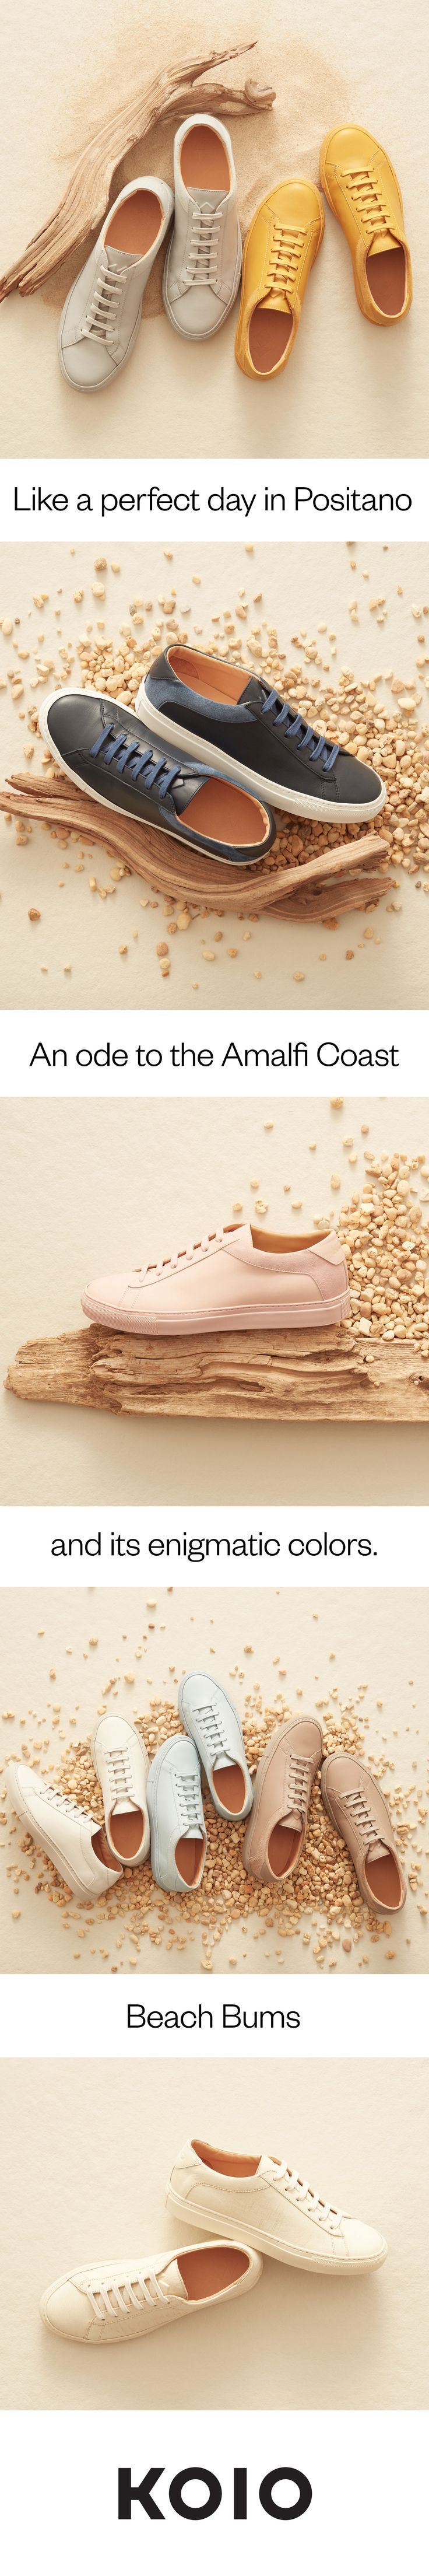 Artfully crafted sneakers for real life. Handmade in Italy. http://www.99wtf.net/men/6-things-which-make-women-attracted-to-men/